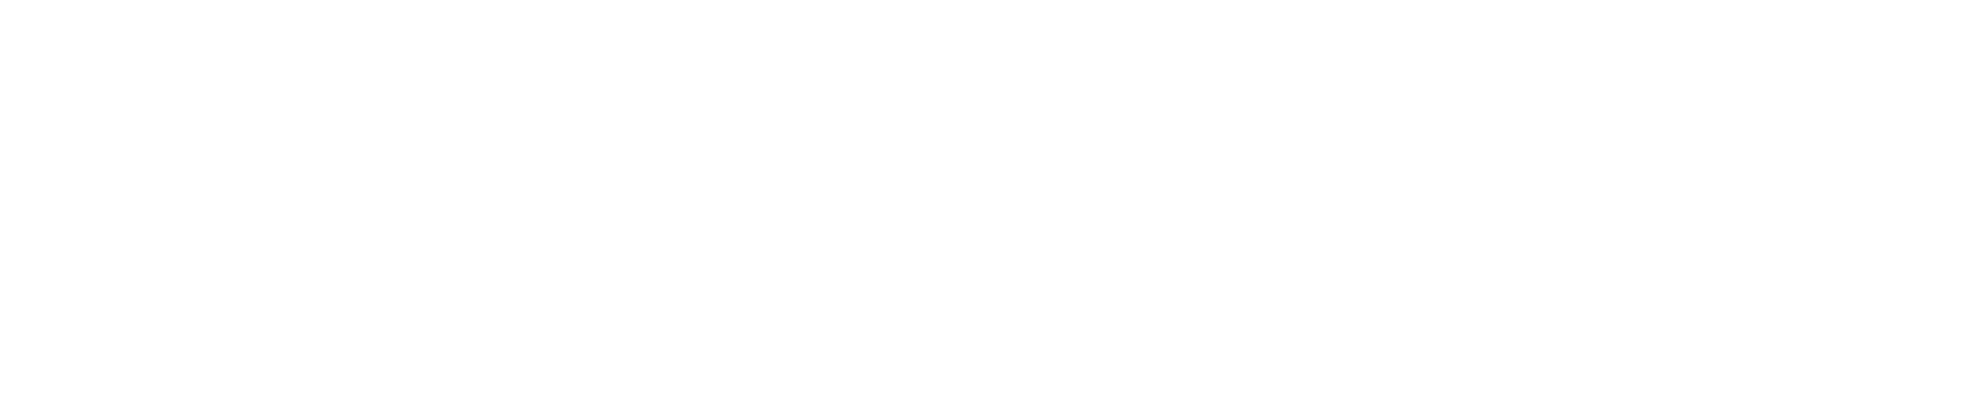 Northwest Pain Care